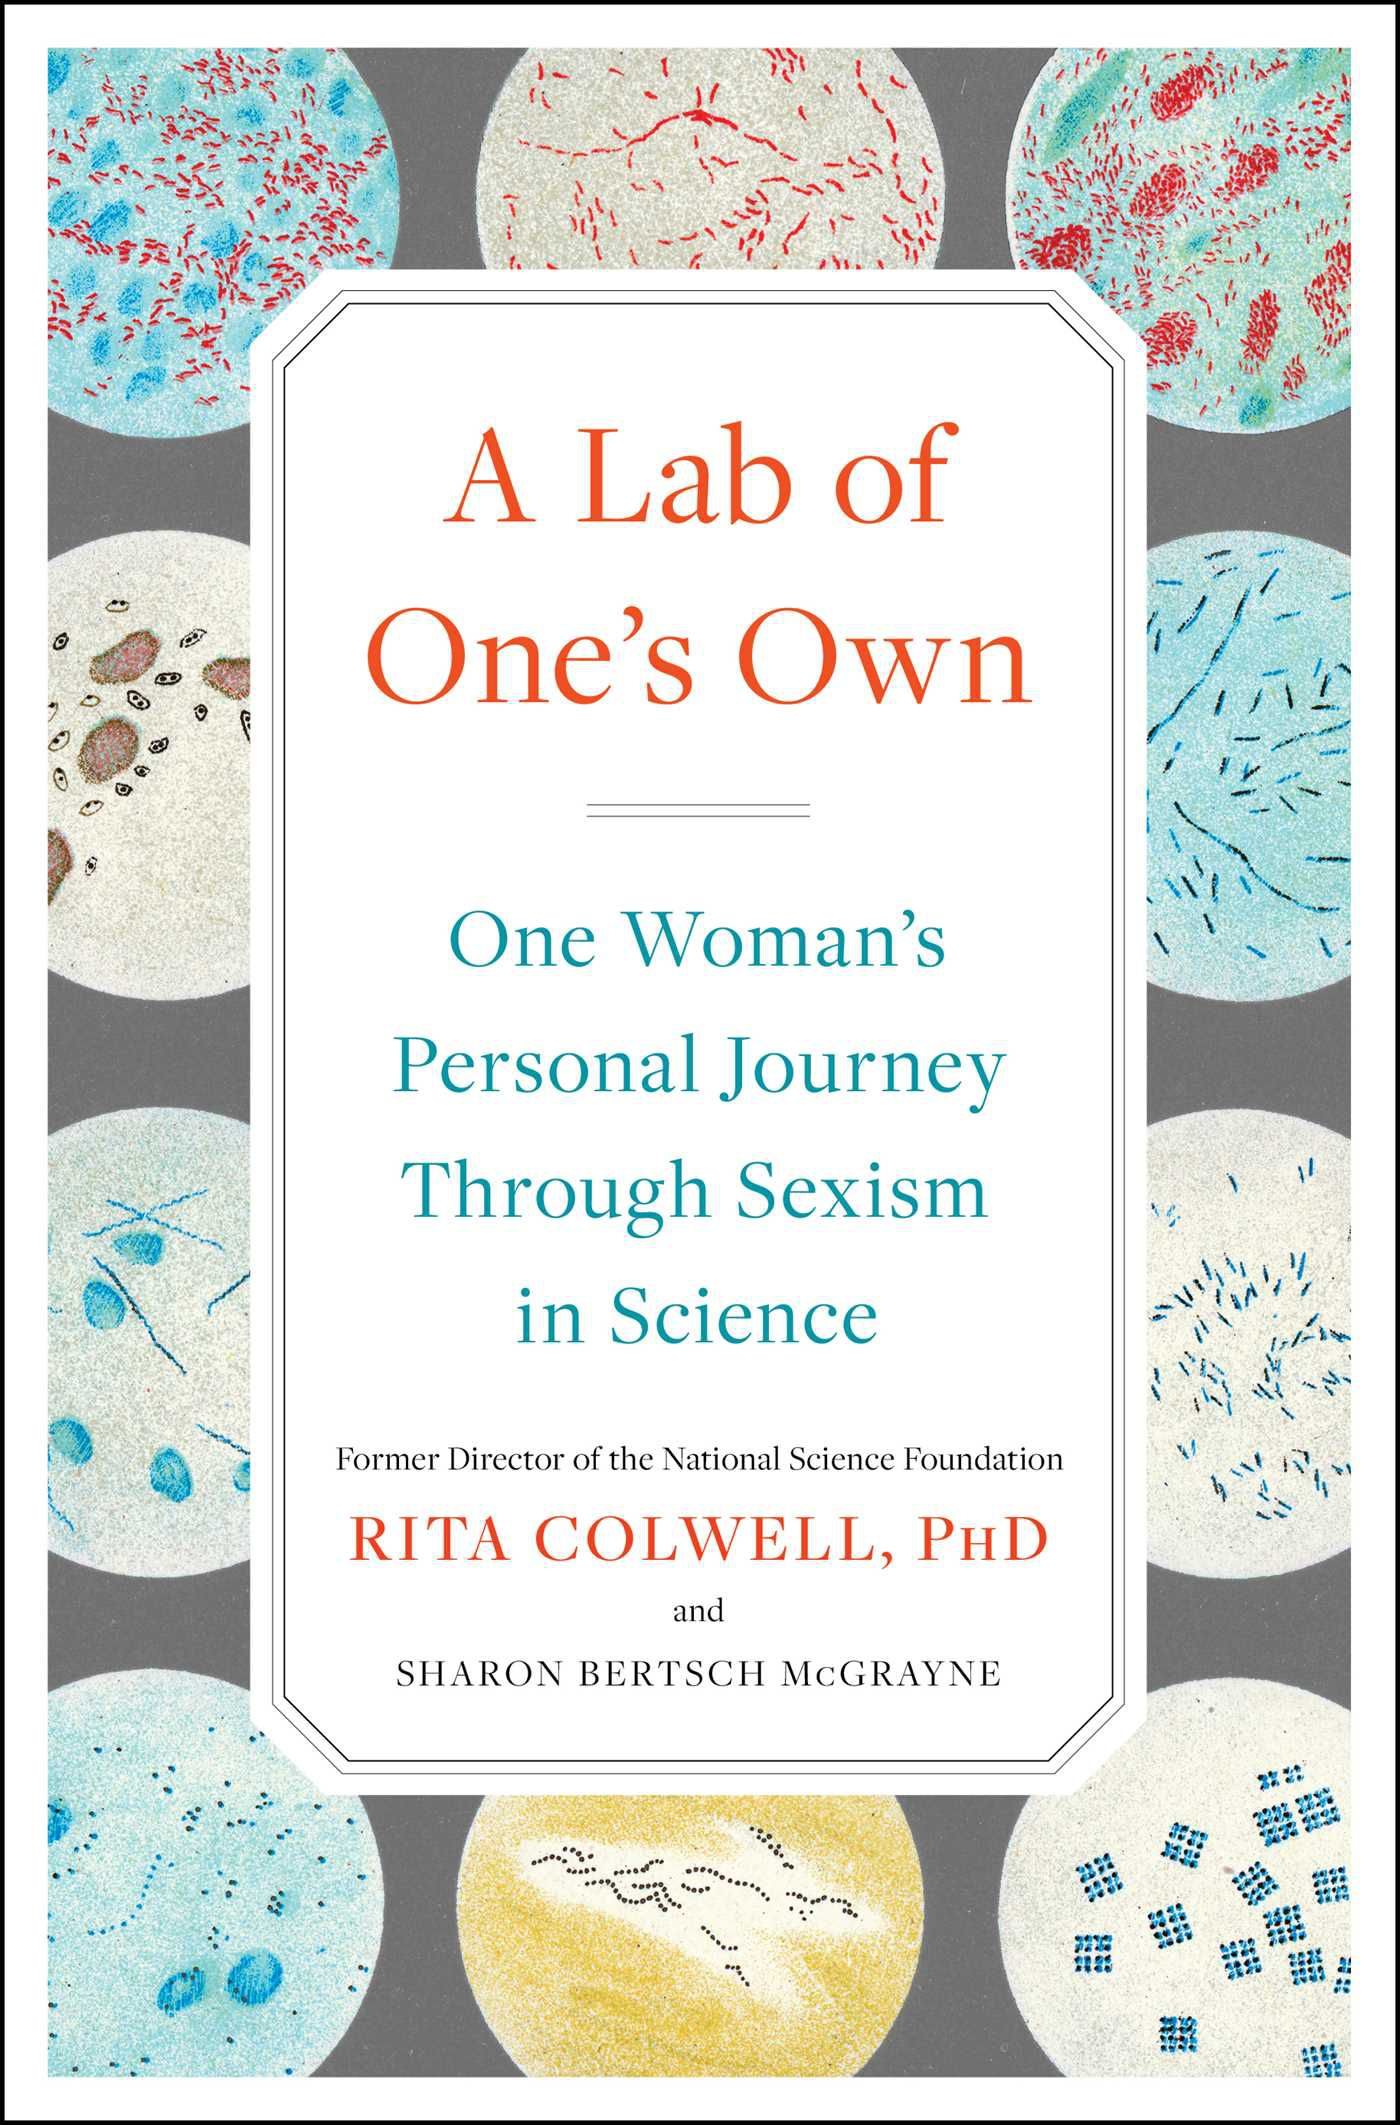 a lab of ones own Colwell.jpg.optimal